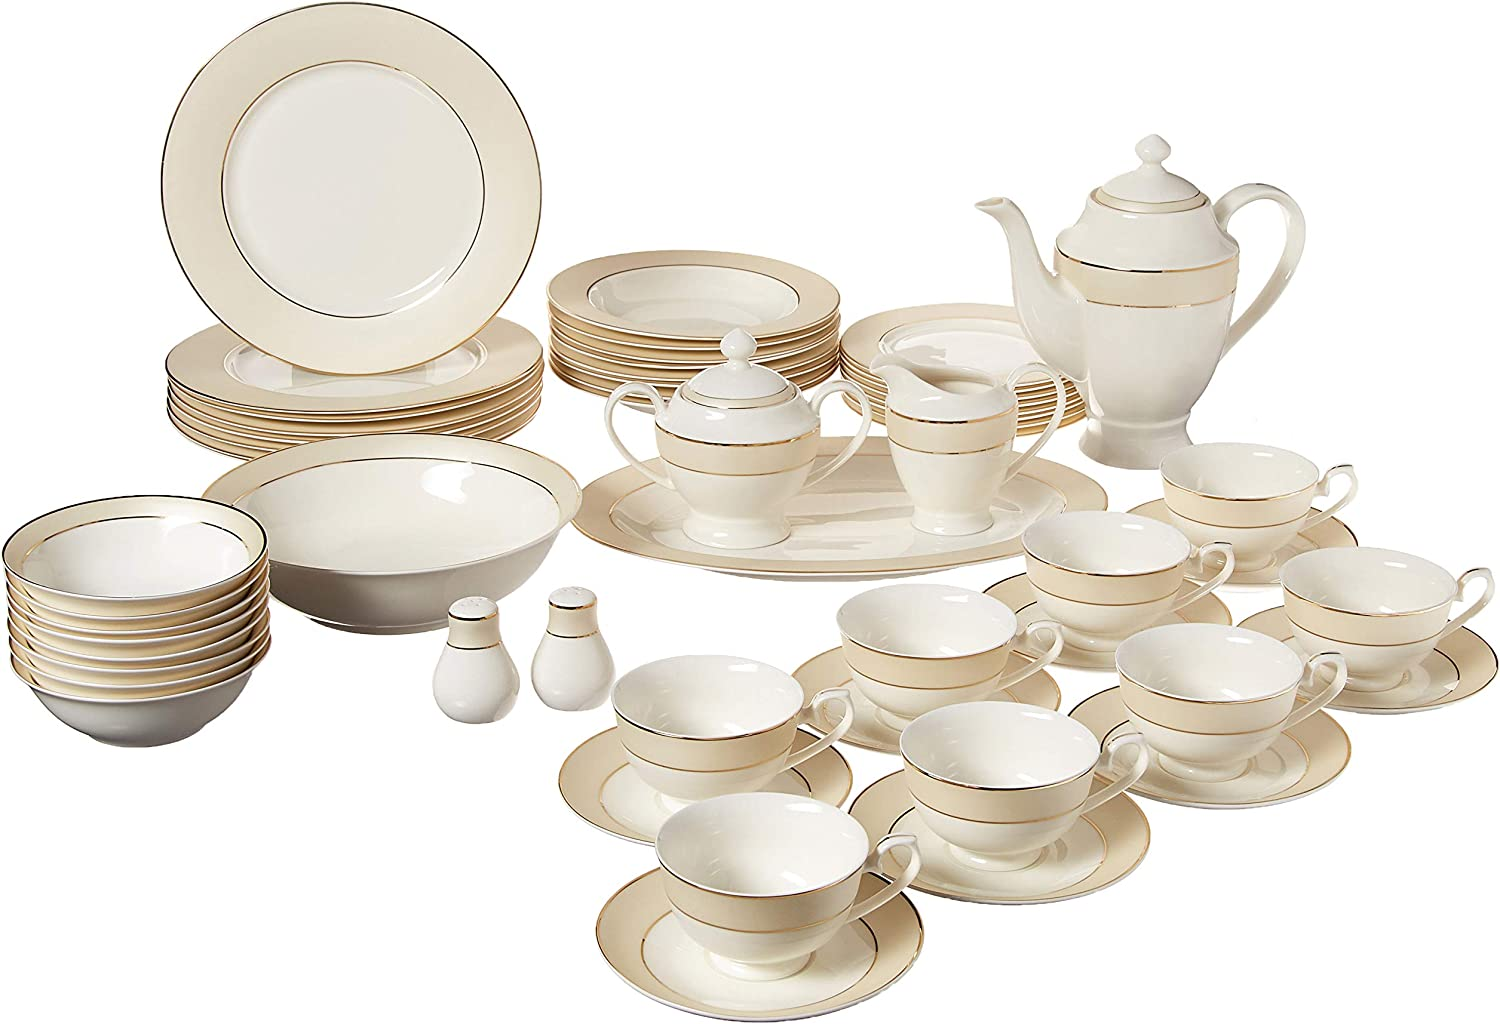 Lorren Home Trends La Luna Bone China 57-Piece Beige Border with 24K Gold Trim Dinnerware Set, Service for 8